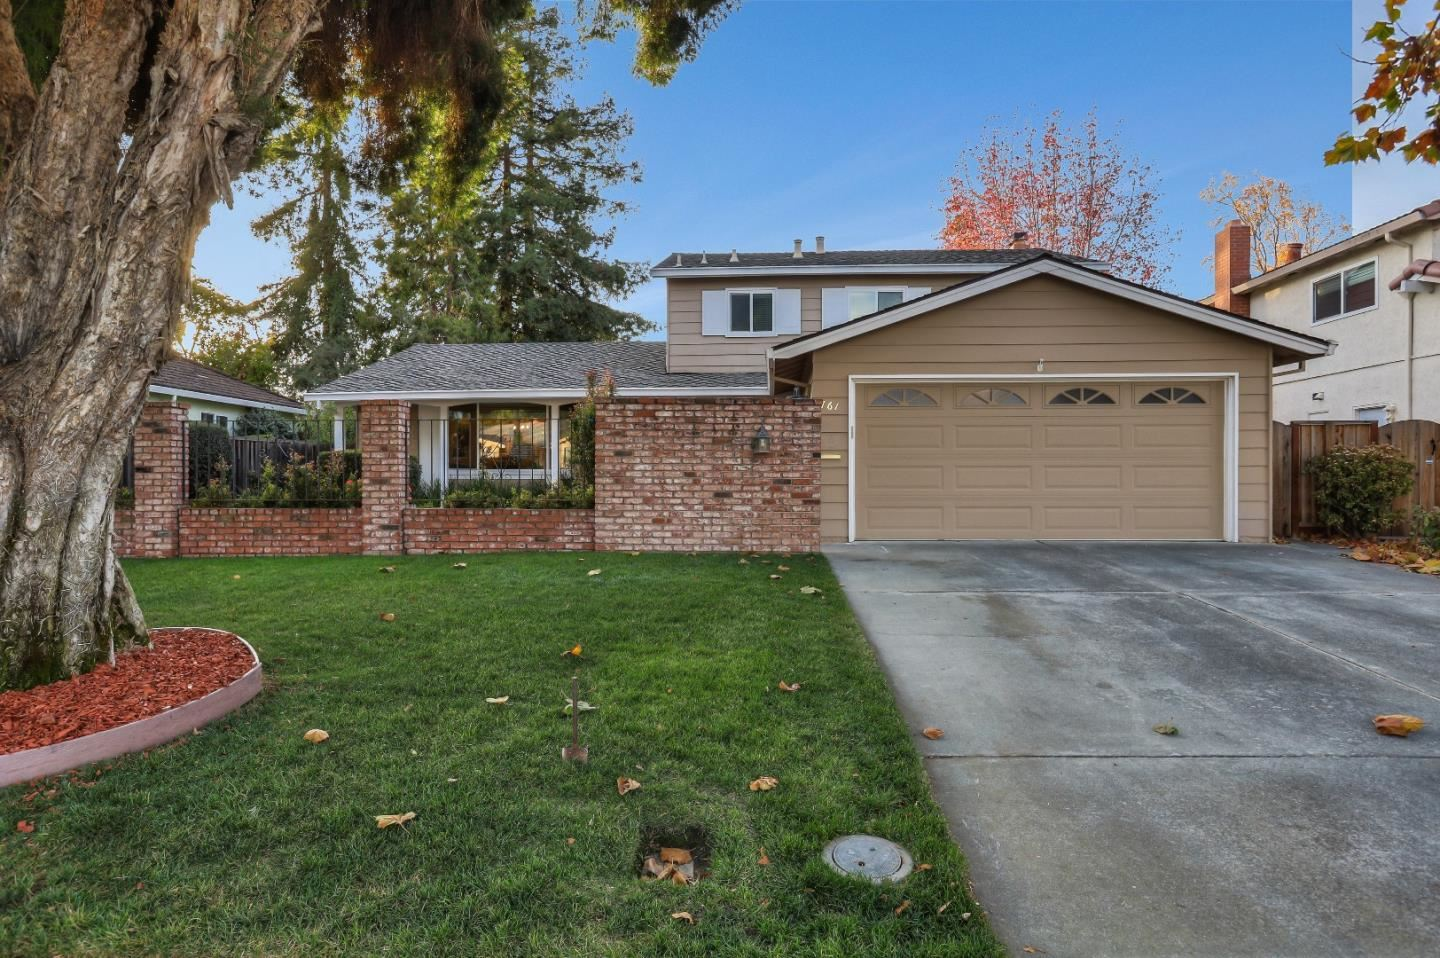 Photo for 761 Sequoia DR, SUNNYVALE, CA 94086 (MLS # ML81776241)